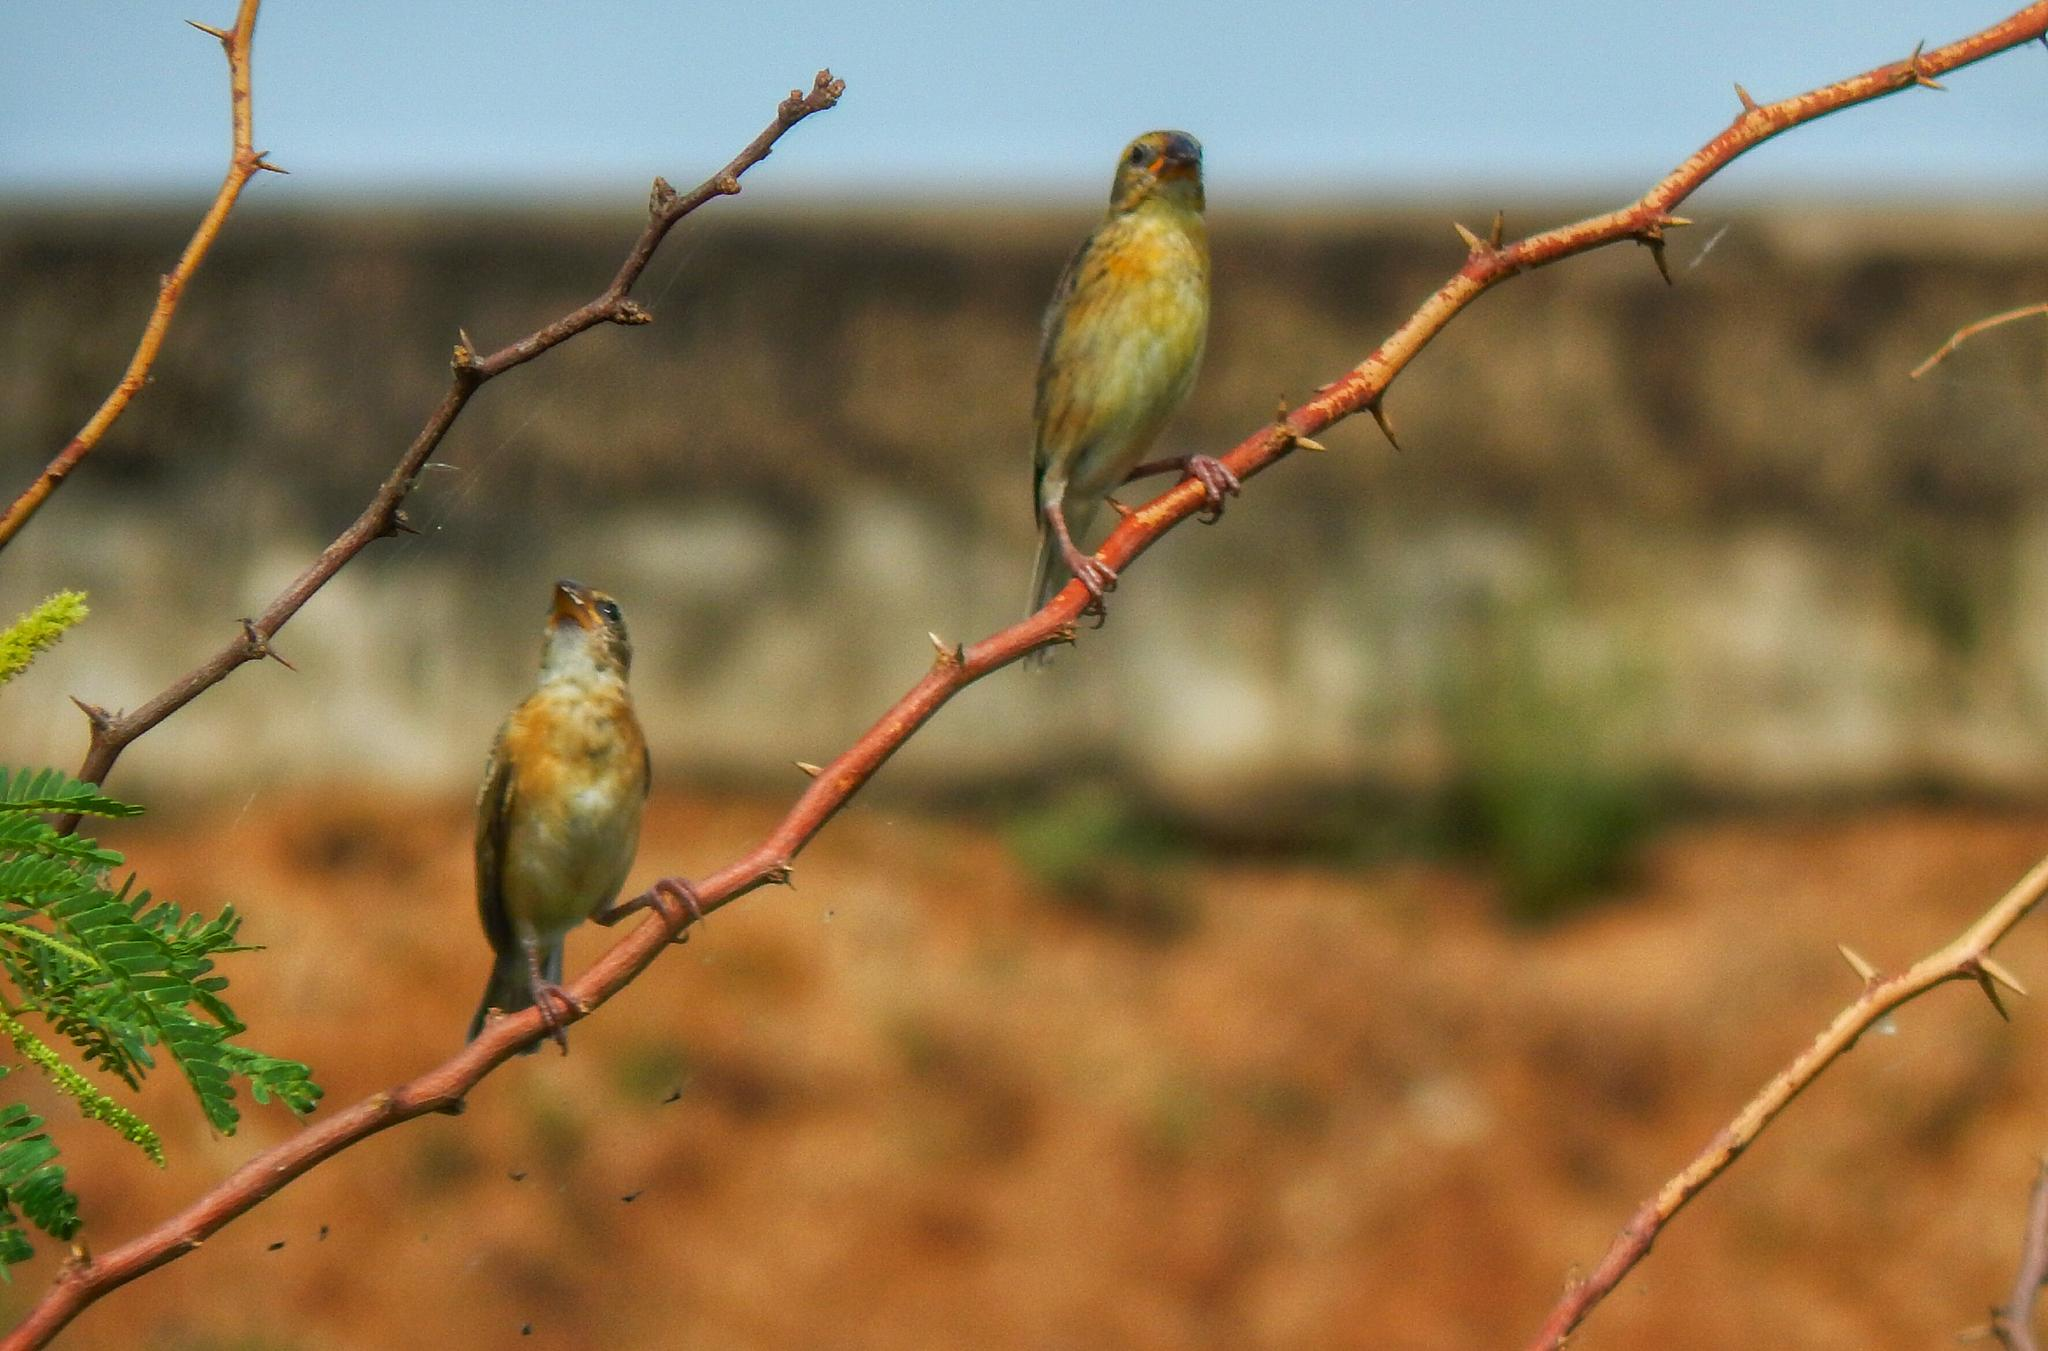 two birds by Aritra ghosh